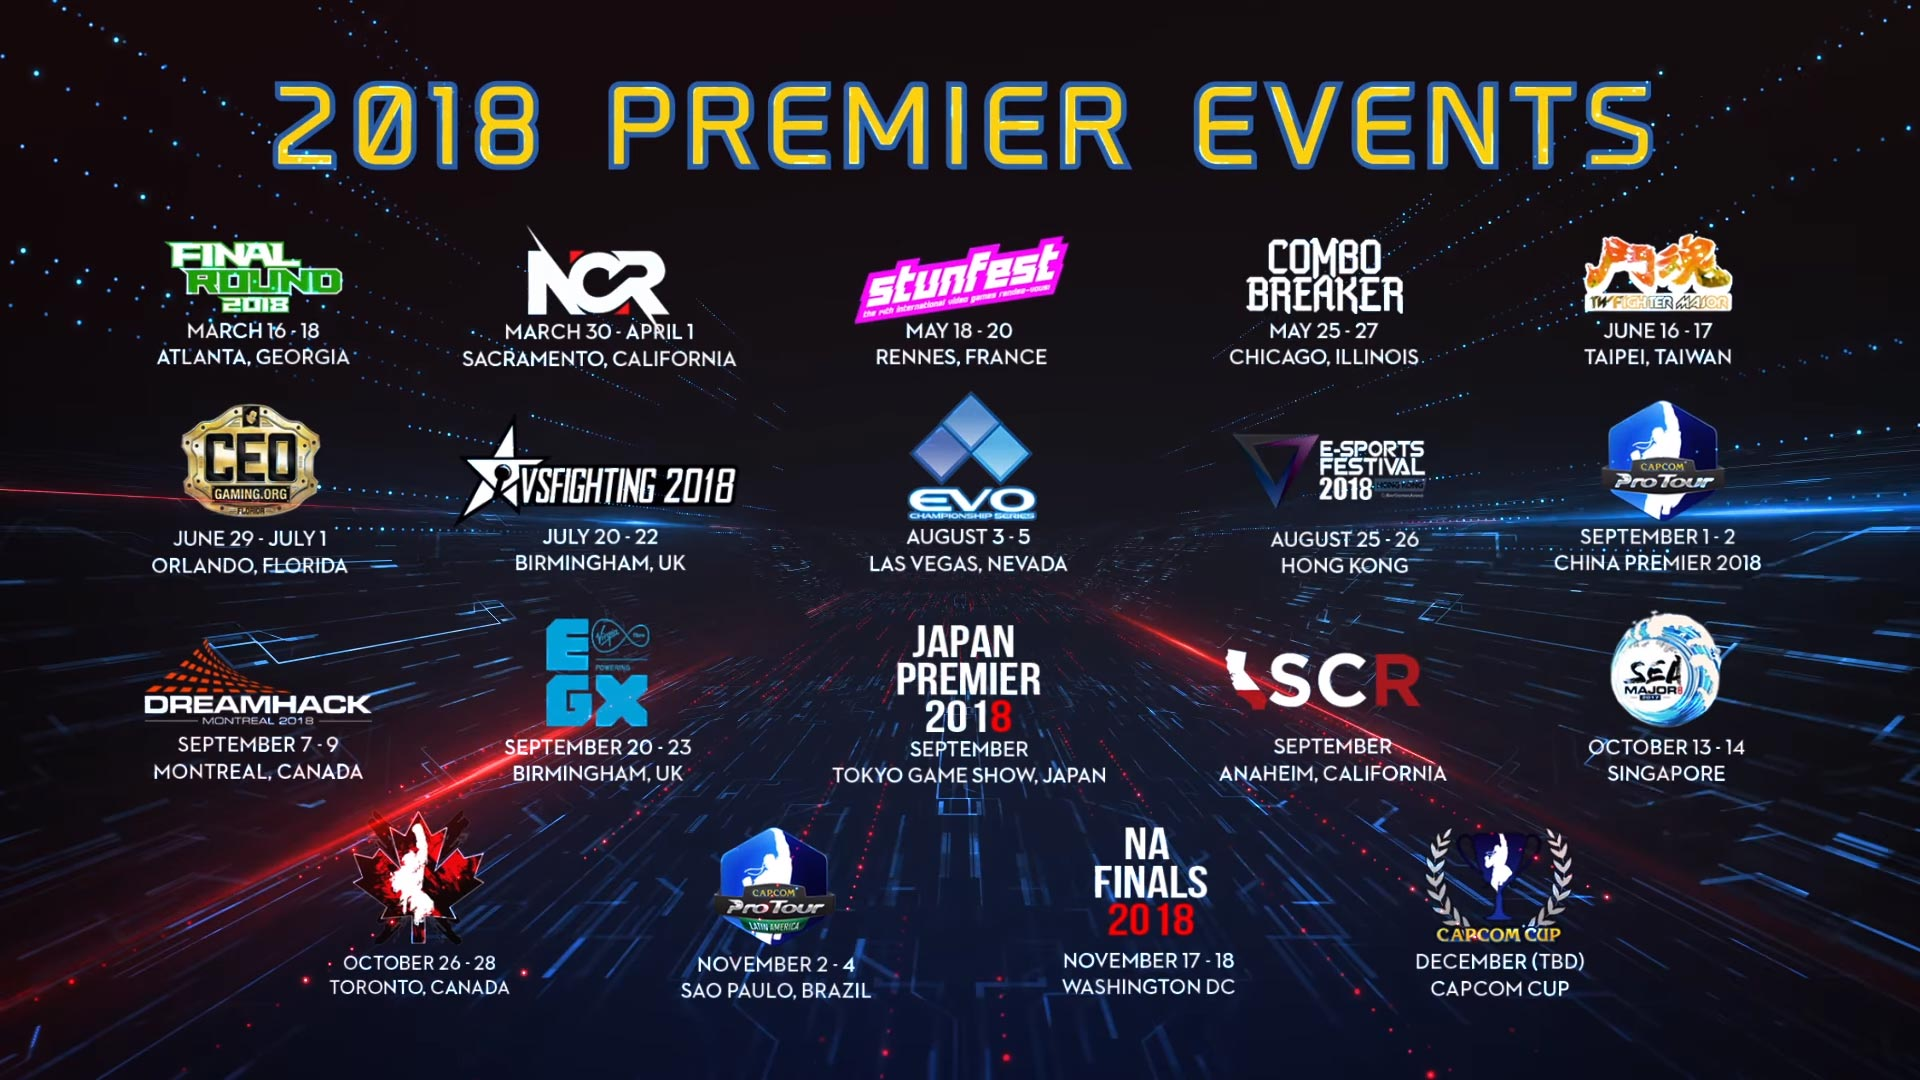 Capcom Pro Tour 2018 details 3 out of 3 image gallery